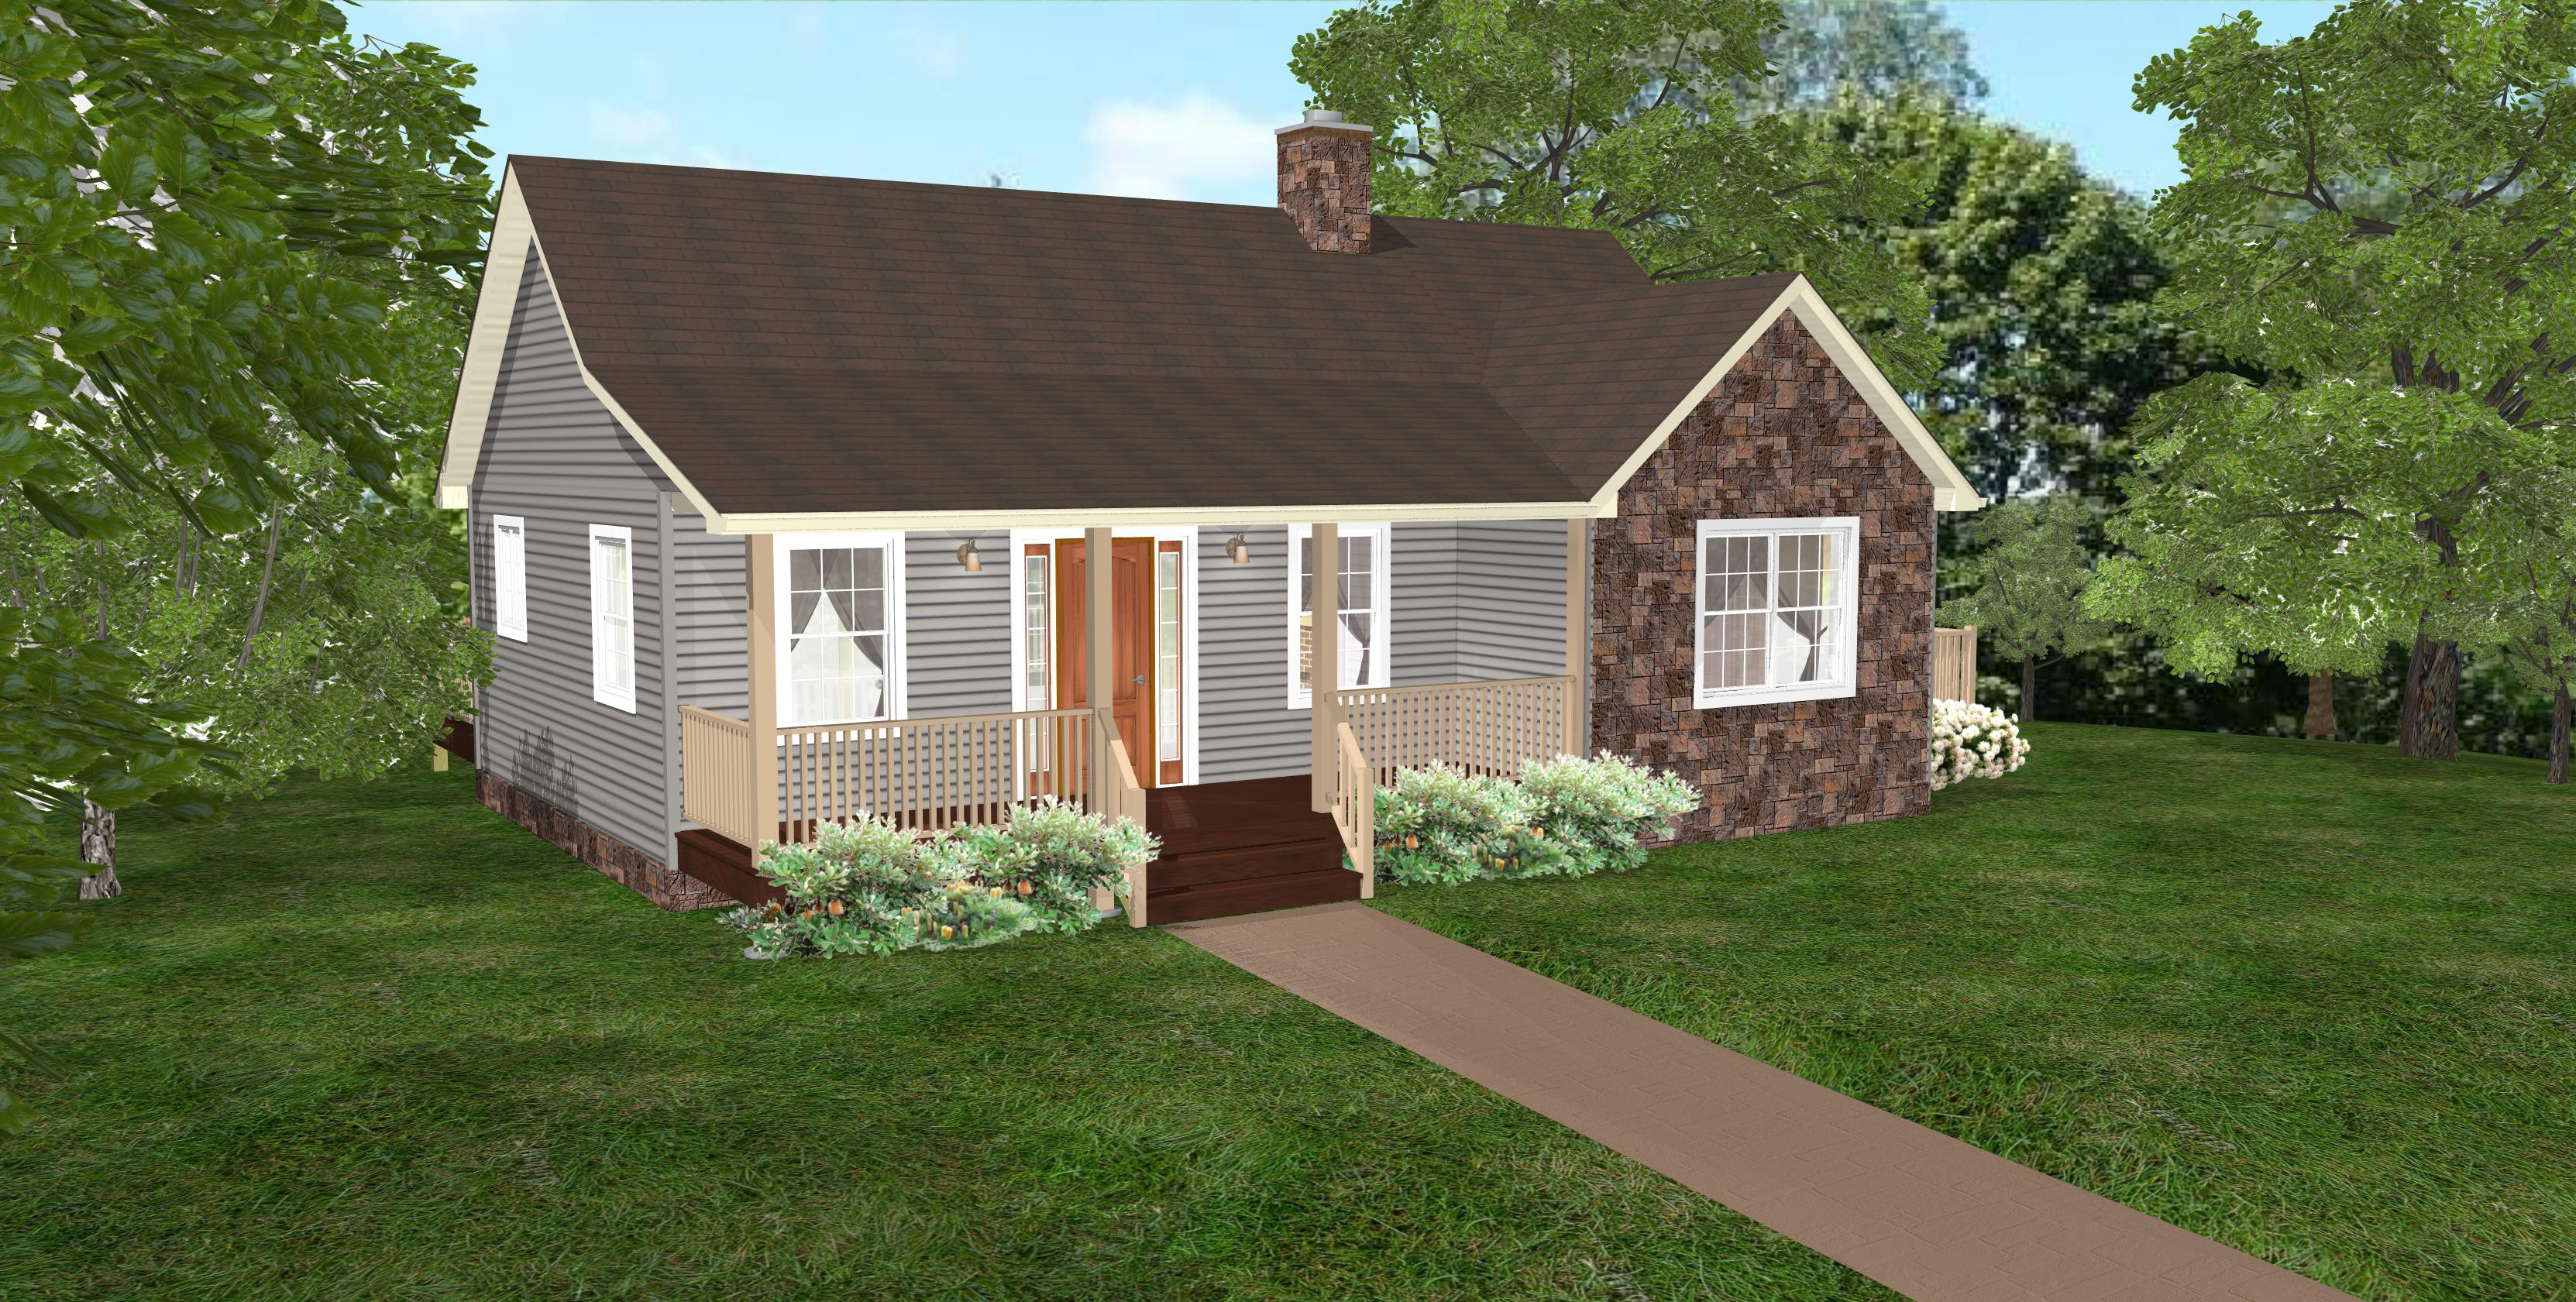 798 Sq Ft Wheelchair Accessible Small House Plans